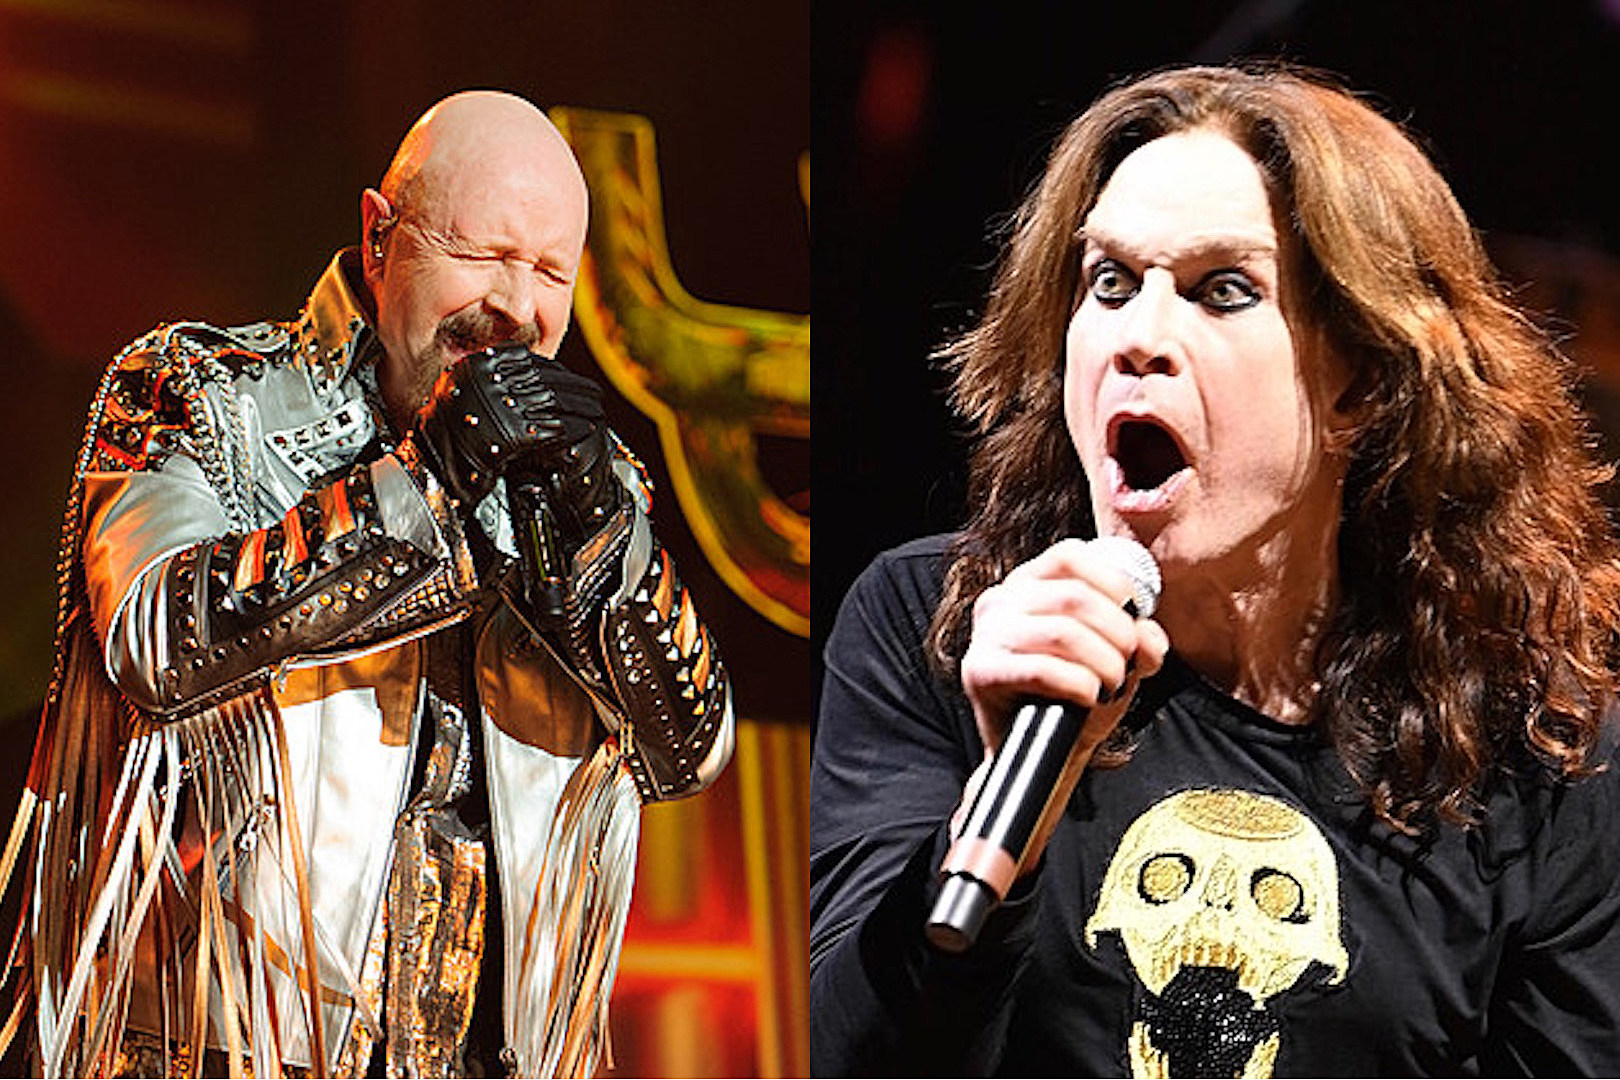 Singers On Tour 2020 Judas Priest Will Open Ozzy Osbourne's Rescheduled 2020 Dates